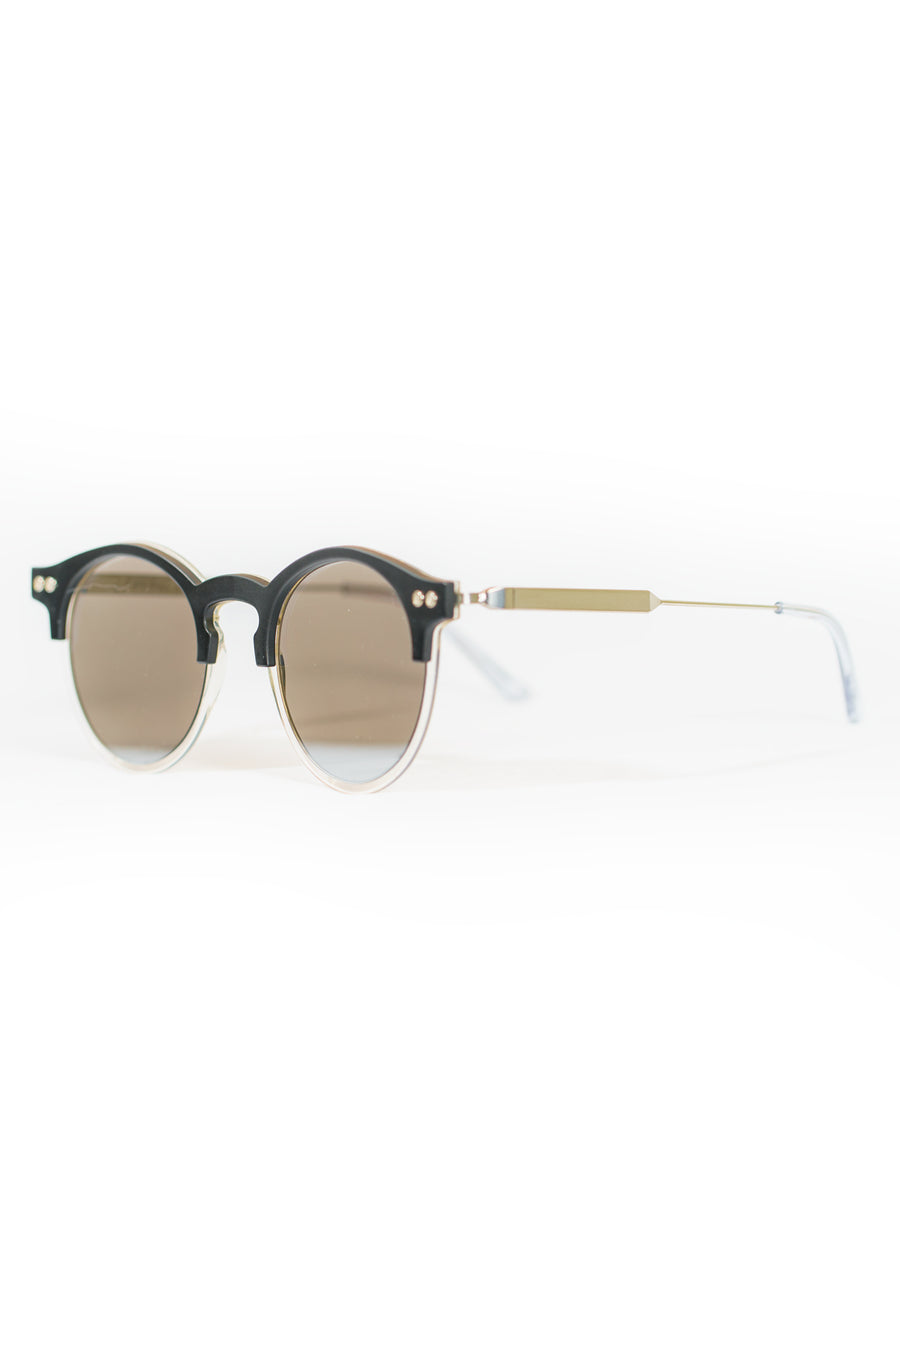 Spitfire Utopia Sunglasses - Matte Black/Clear/Silver Mirror